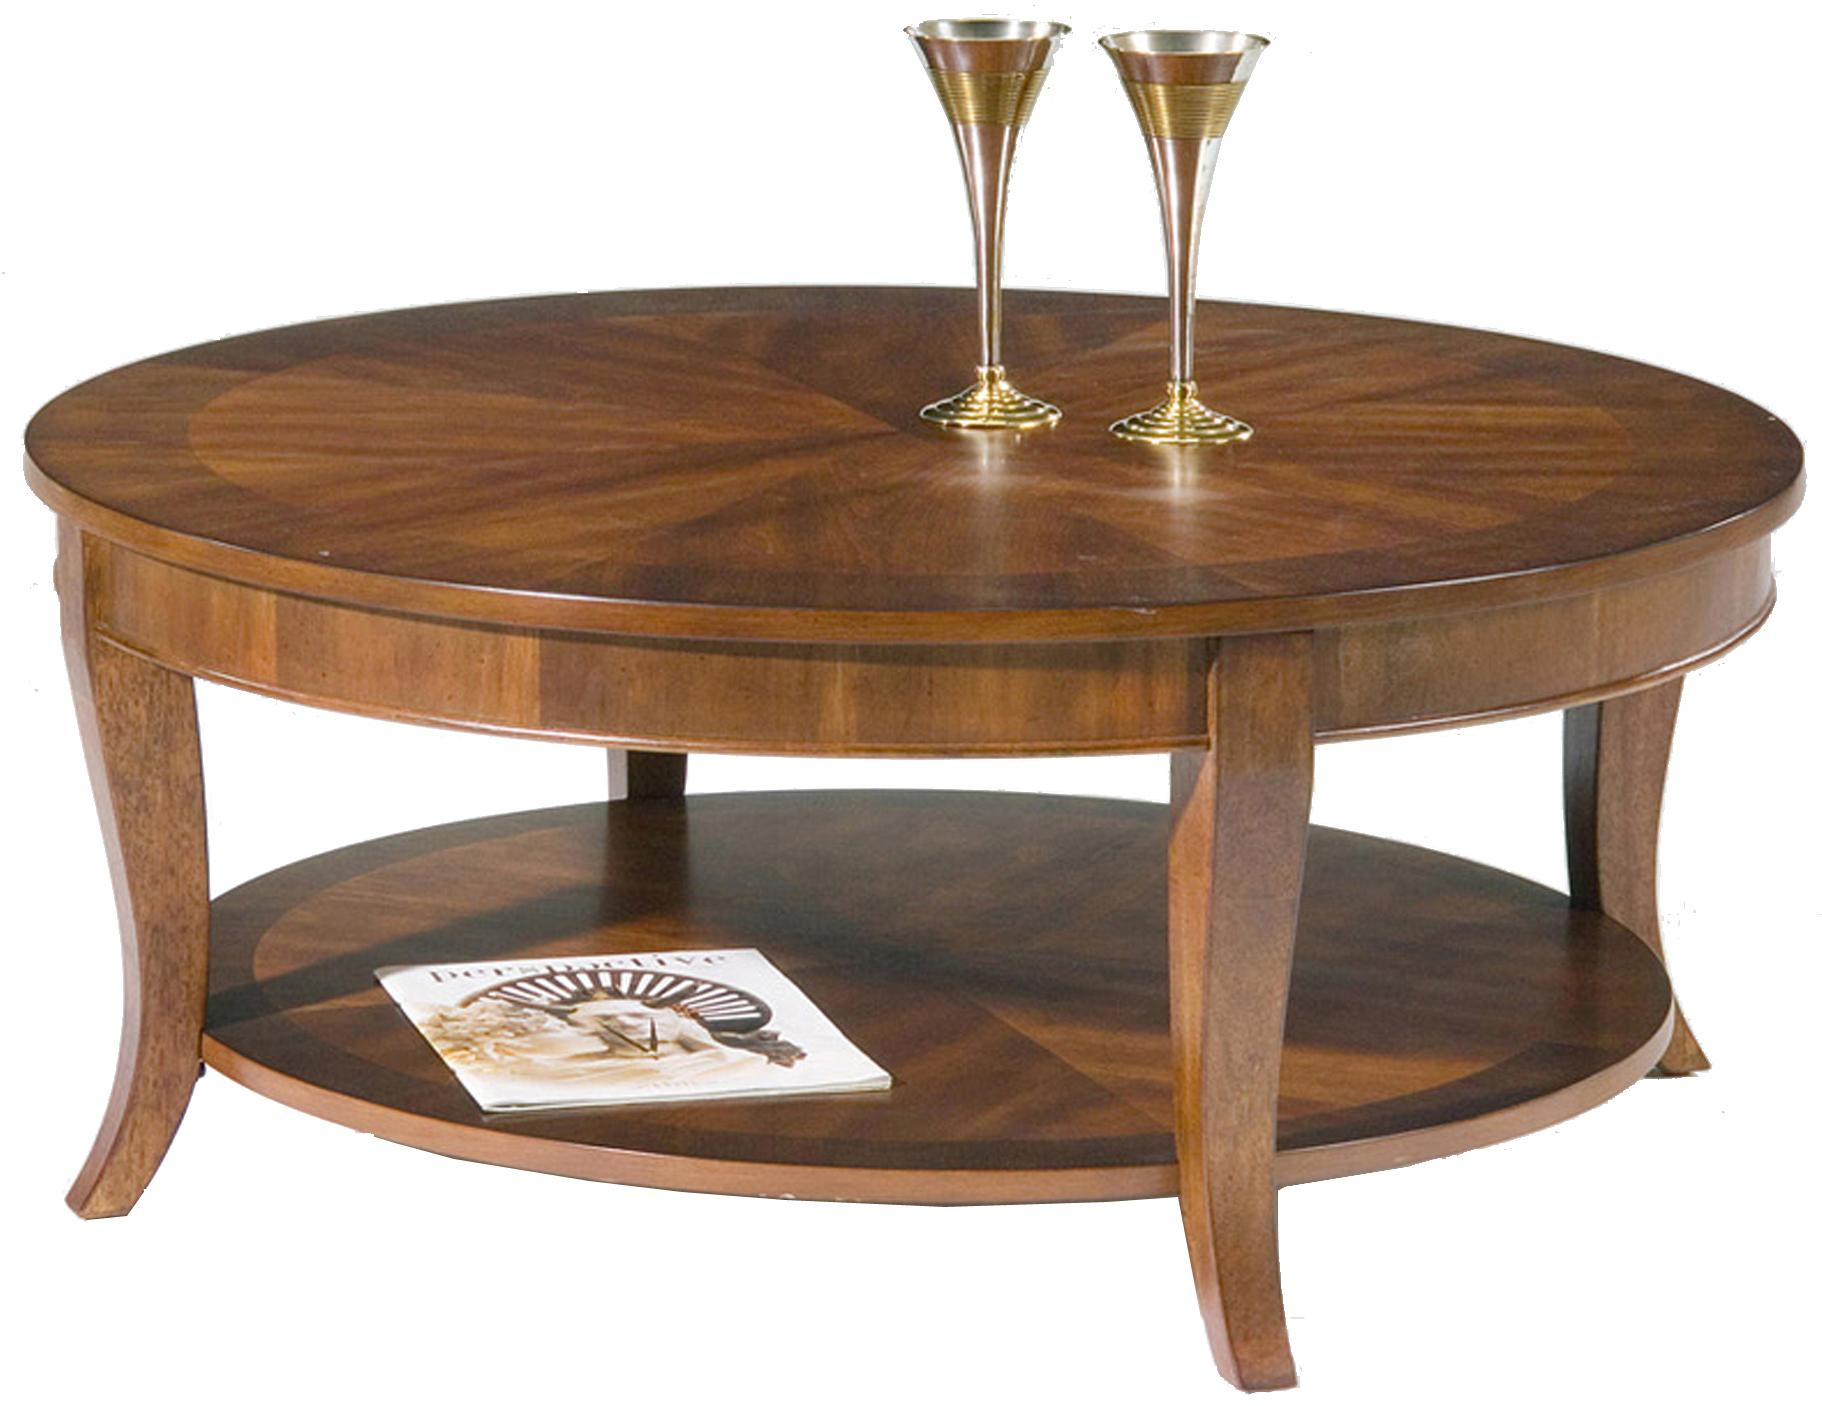 Liberty Furniture Bradshaw Round Cocktail Table   Item Number: 748 OT1010